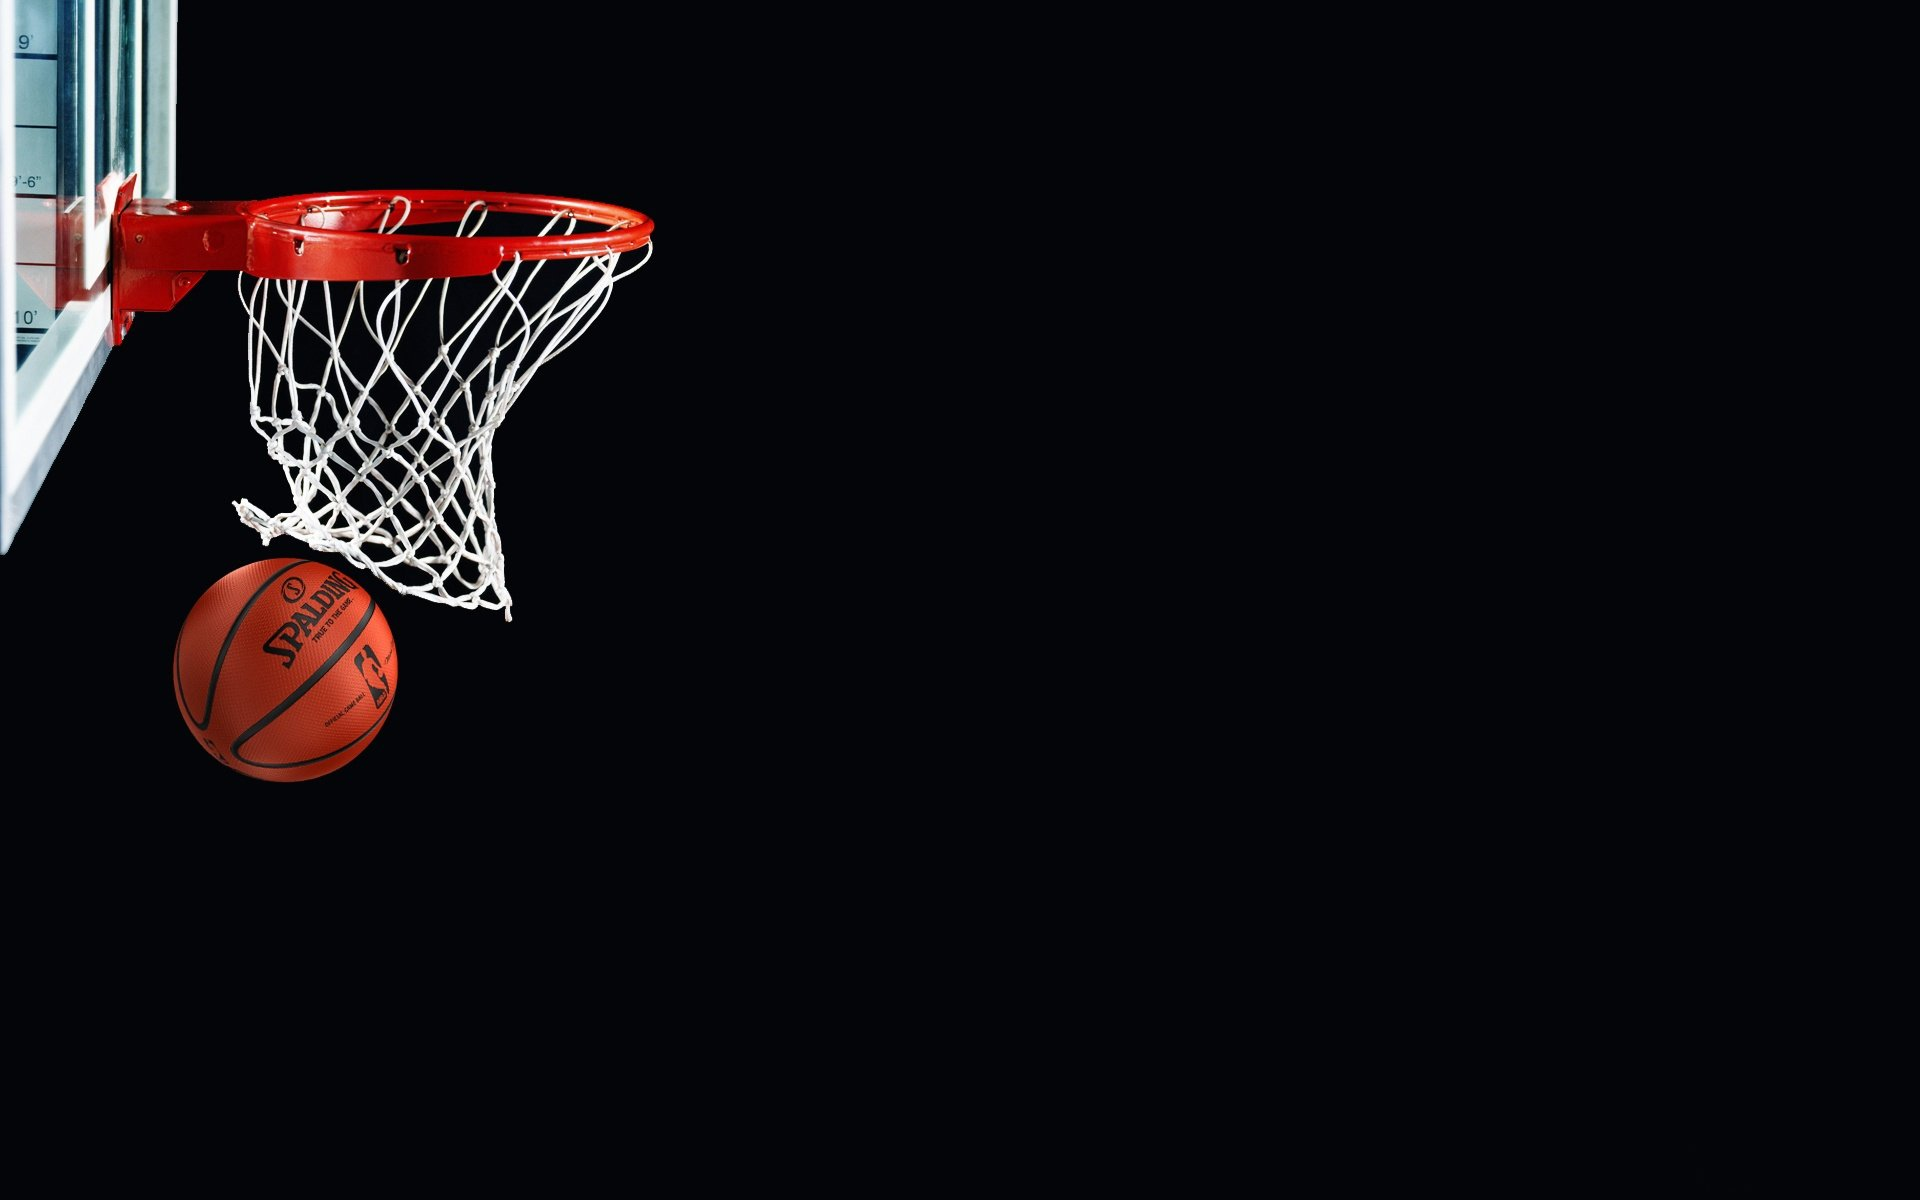 Basketball Themed Wallpaper